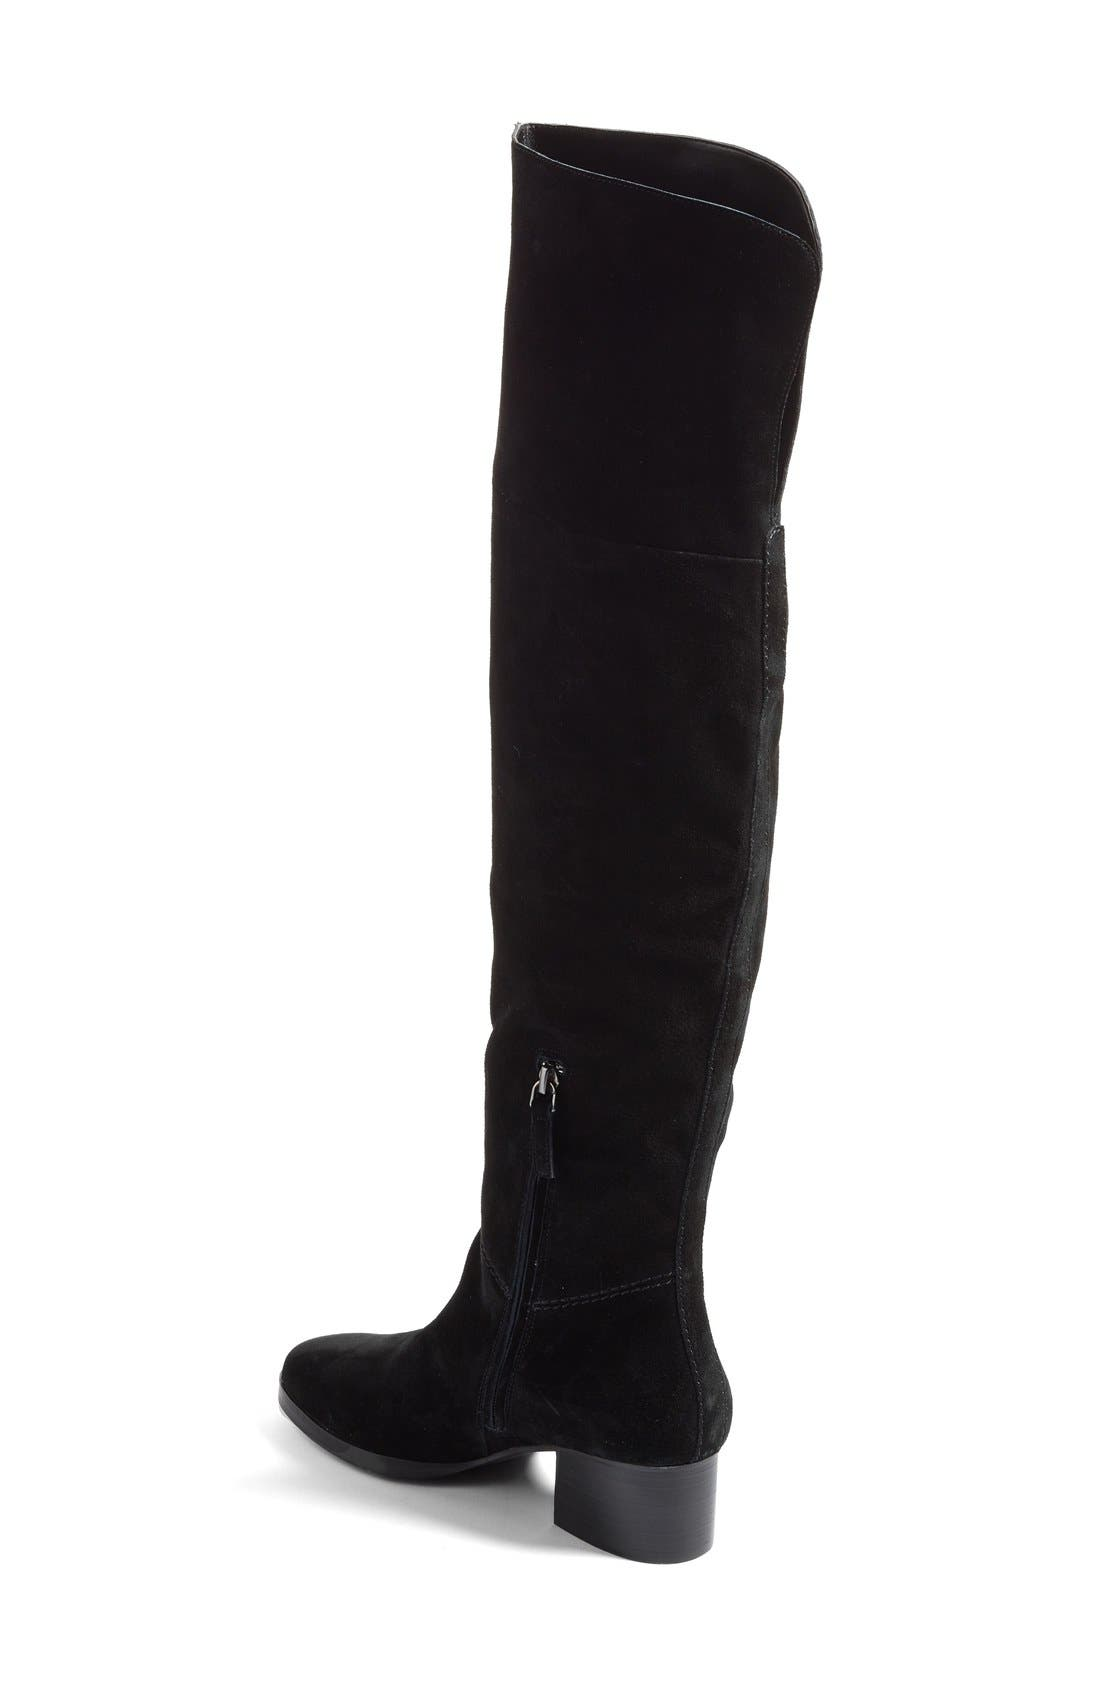 Tessie Tall Boot,                             Alternate thumbnail 2, color,                             Black / Black Suede